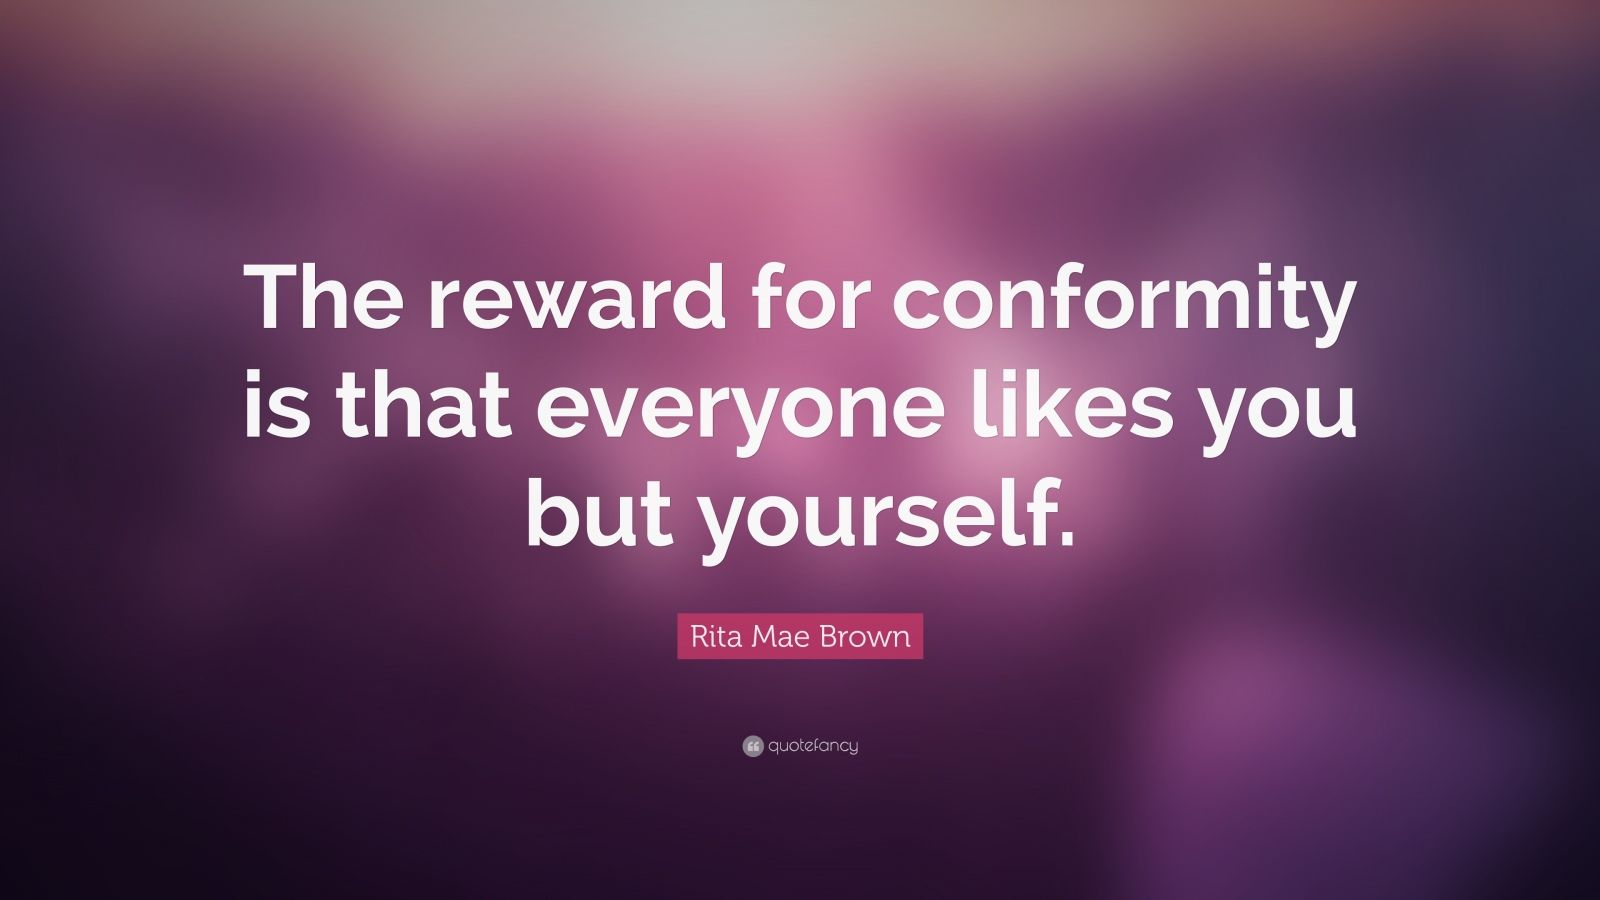 """Rita Mae Brown Quote: """"The reward for conformity is that everyone likes you but yourself."""""""